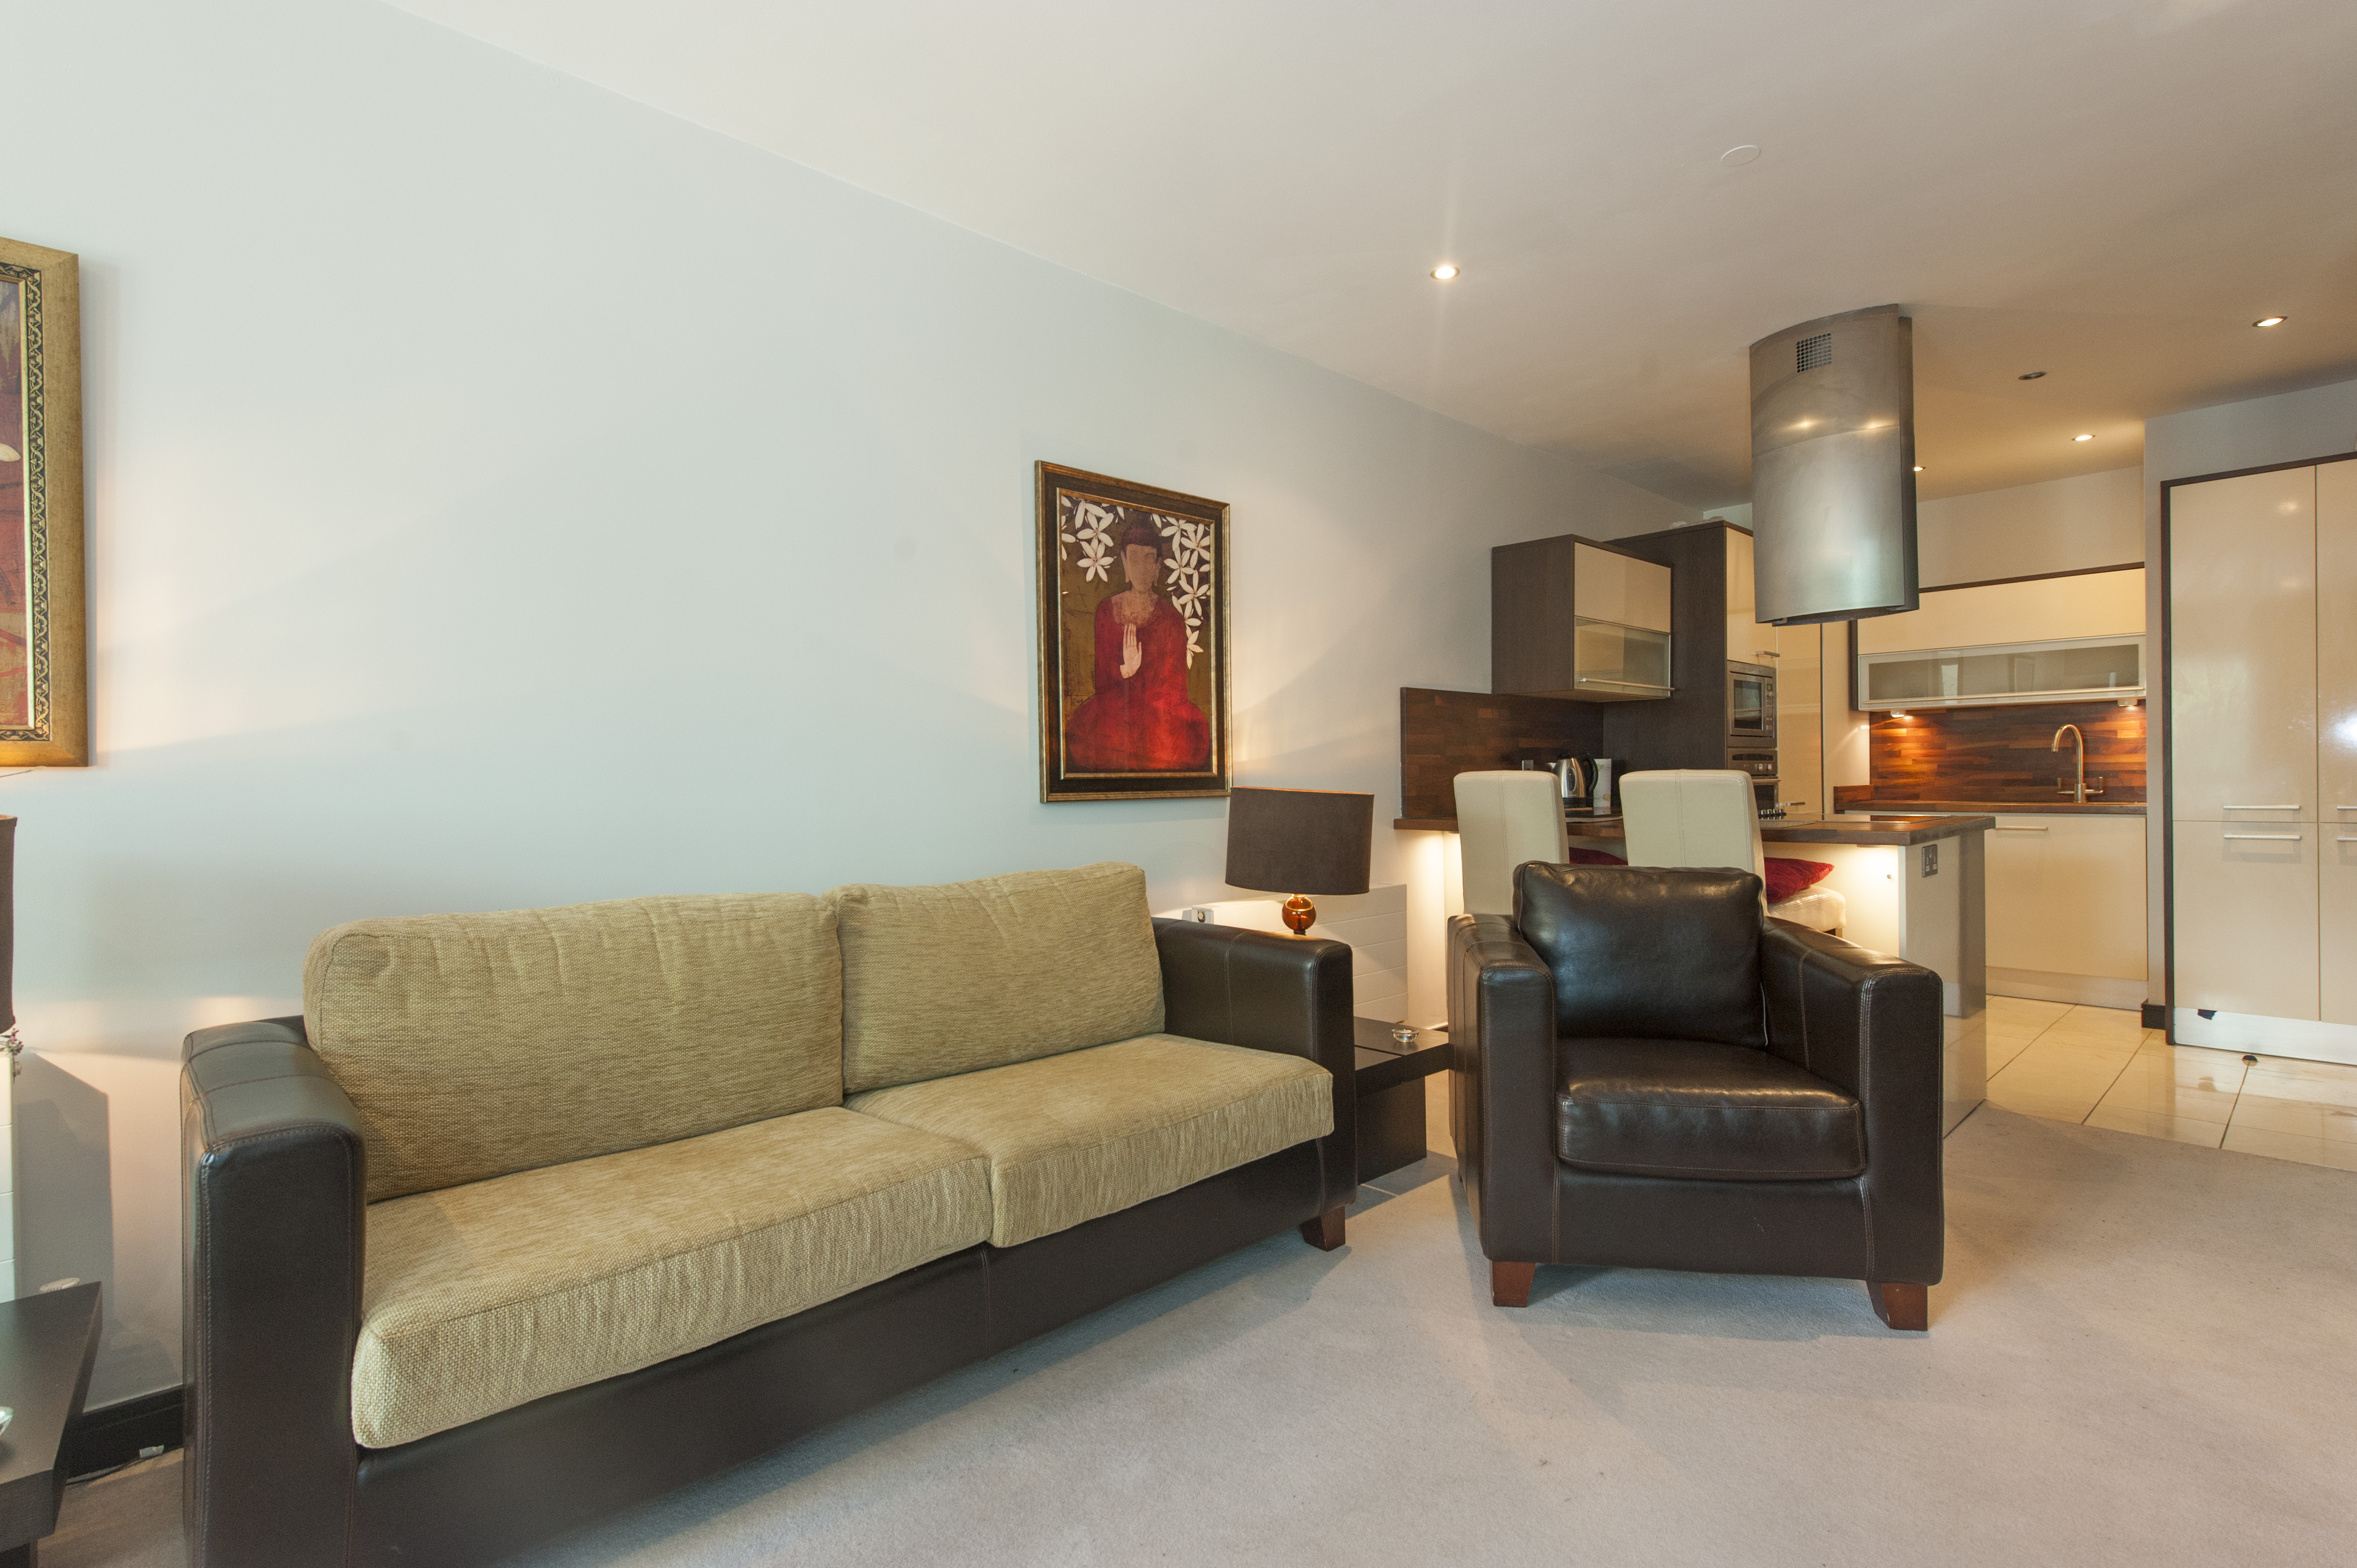 Image of a Dwellworks corporate housing living room